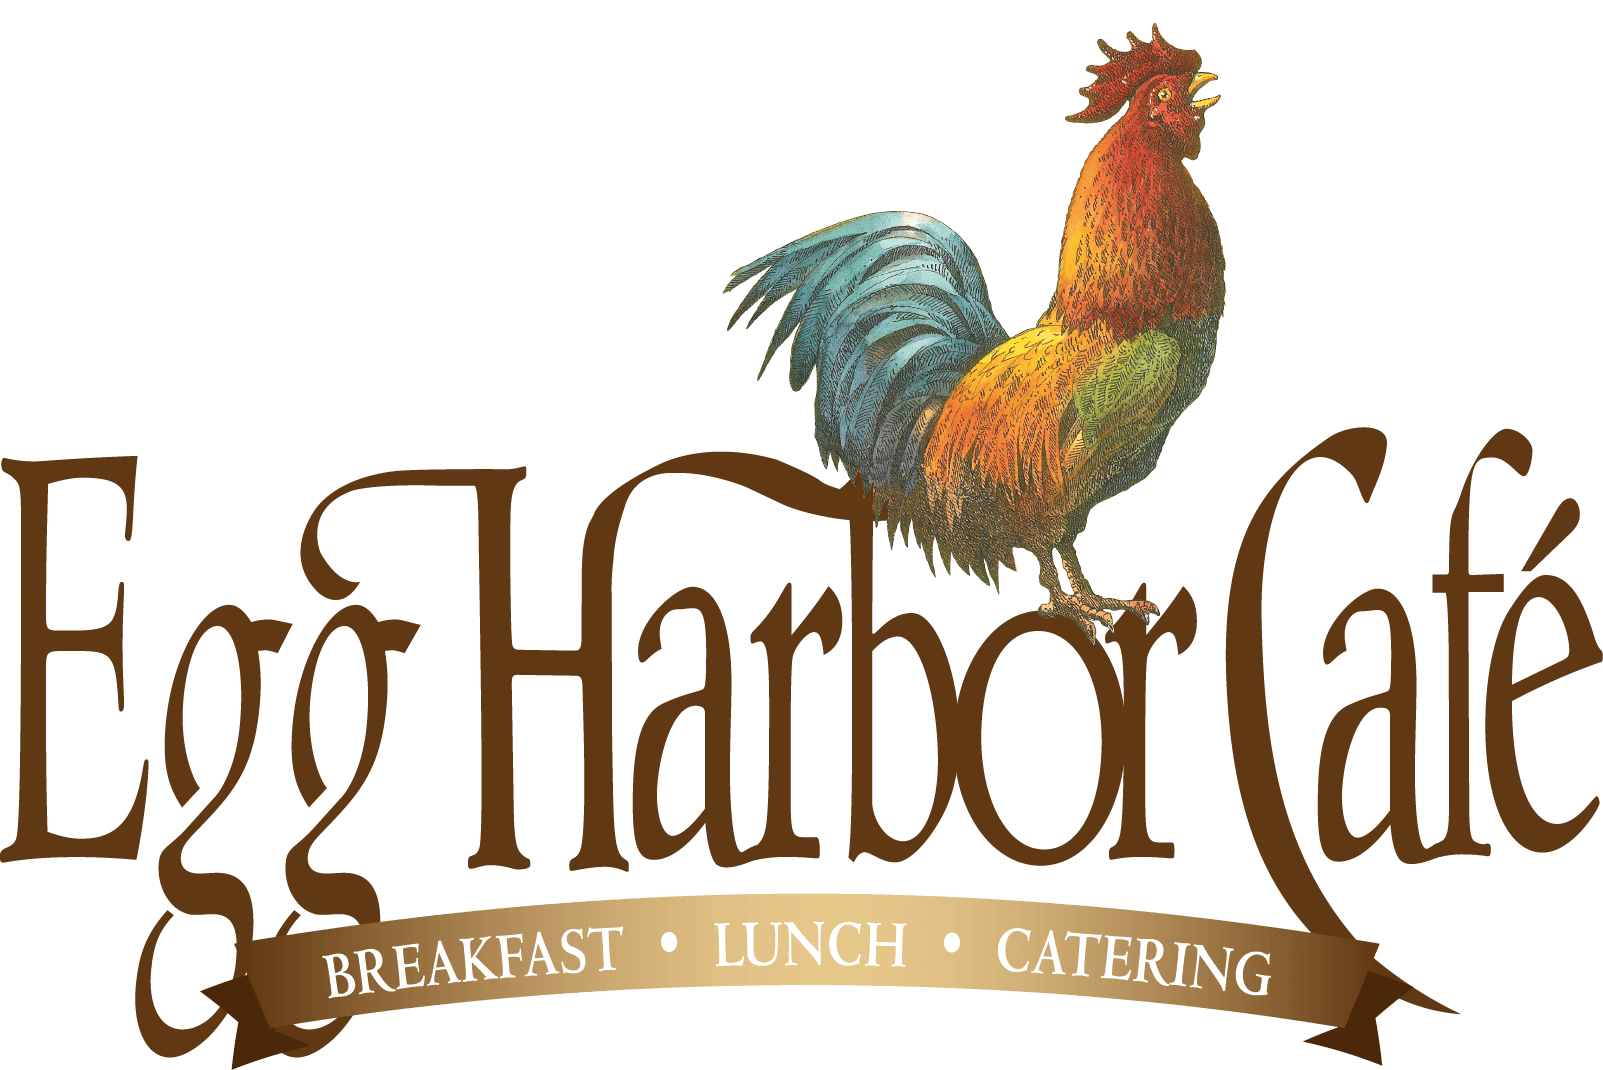 Egg Harbor Café - Fresh Food, Modern Farmhouse Breakfast & Lunch ...